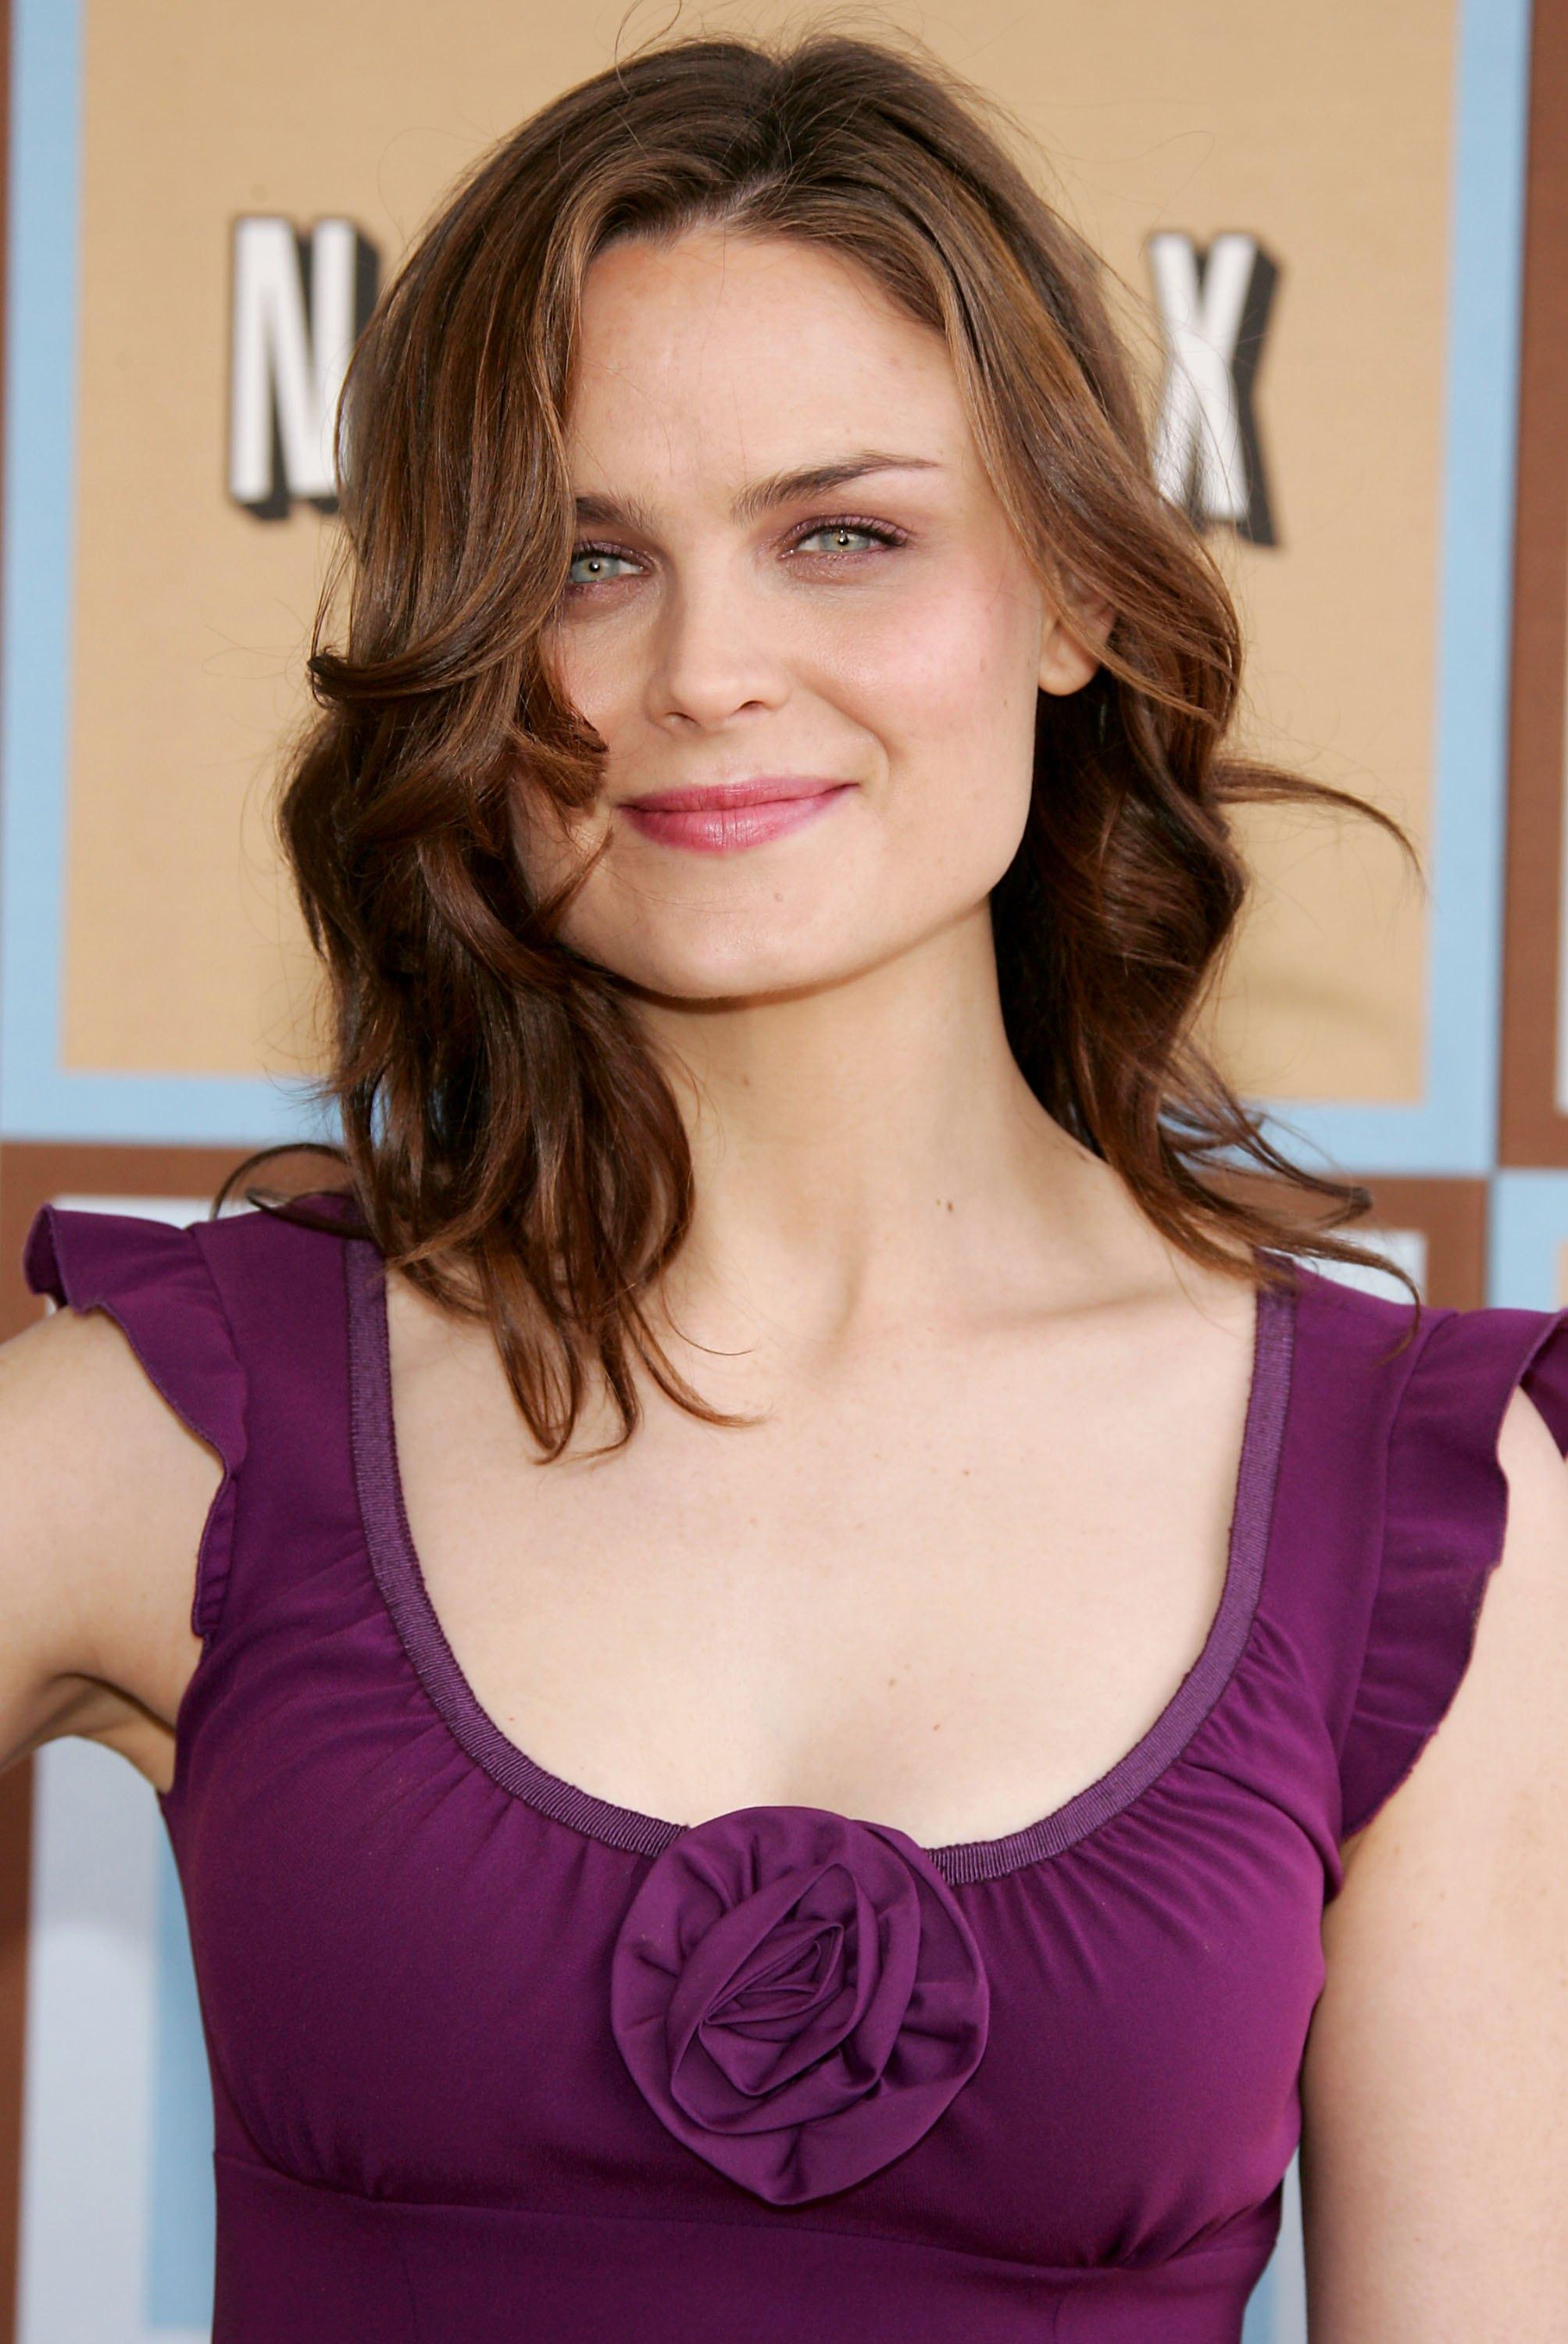 Emily Deschanel Nude - Page 2 Pictures, Naked, Oops, Topless, Bikini, Video, Nipple-7823